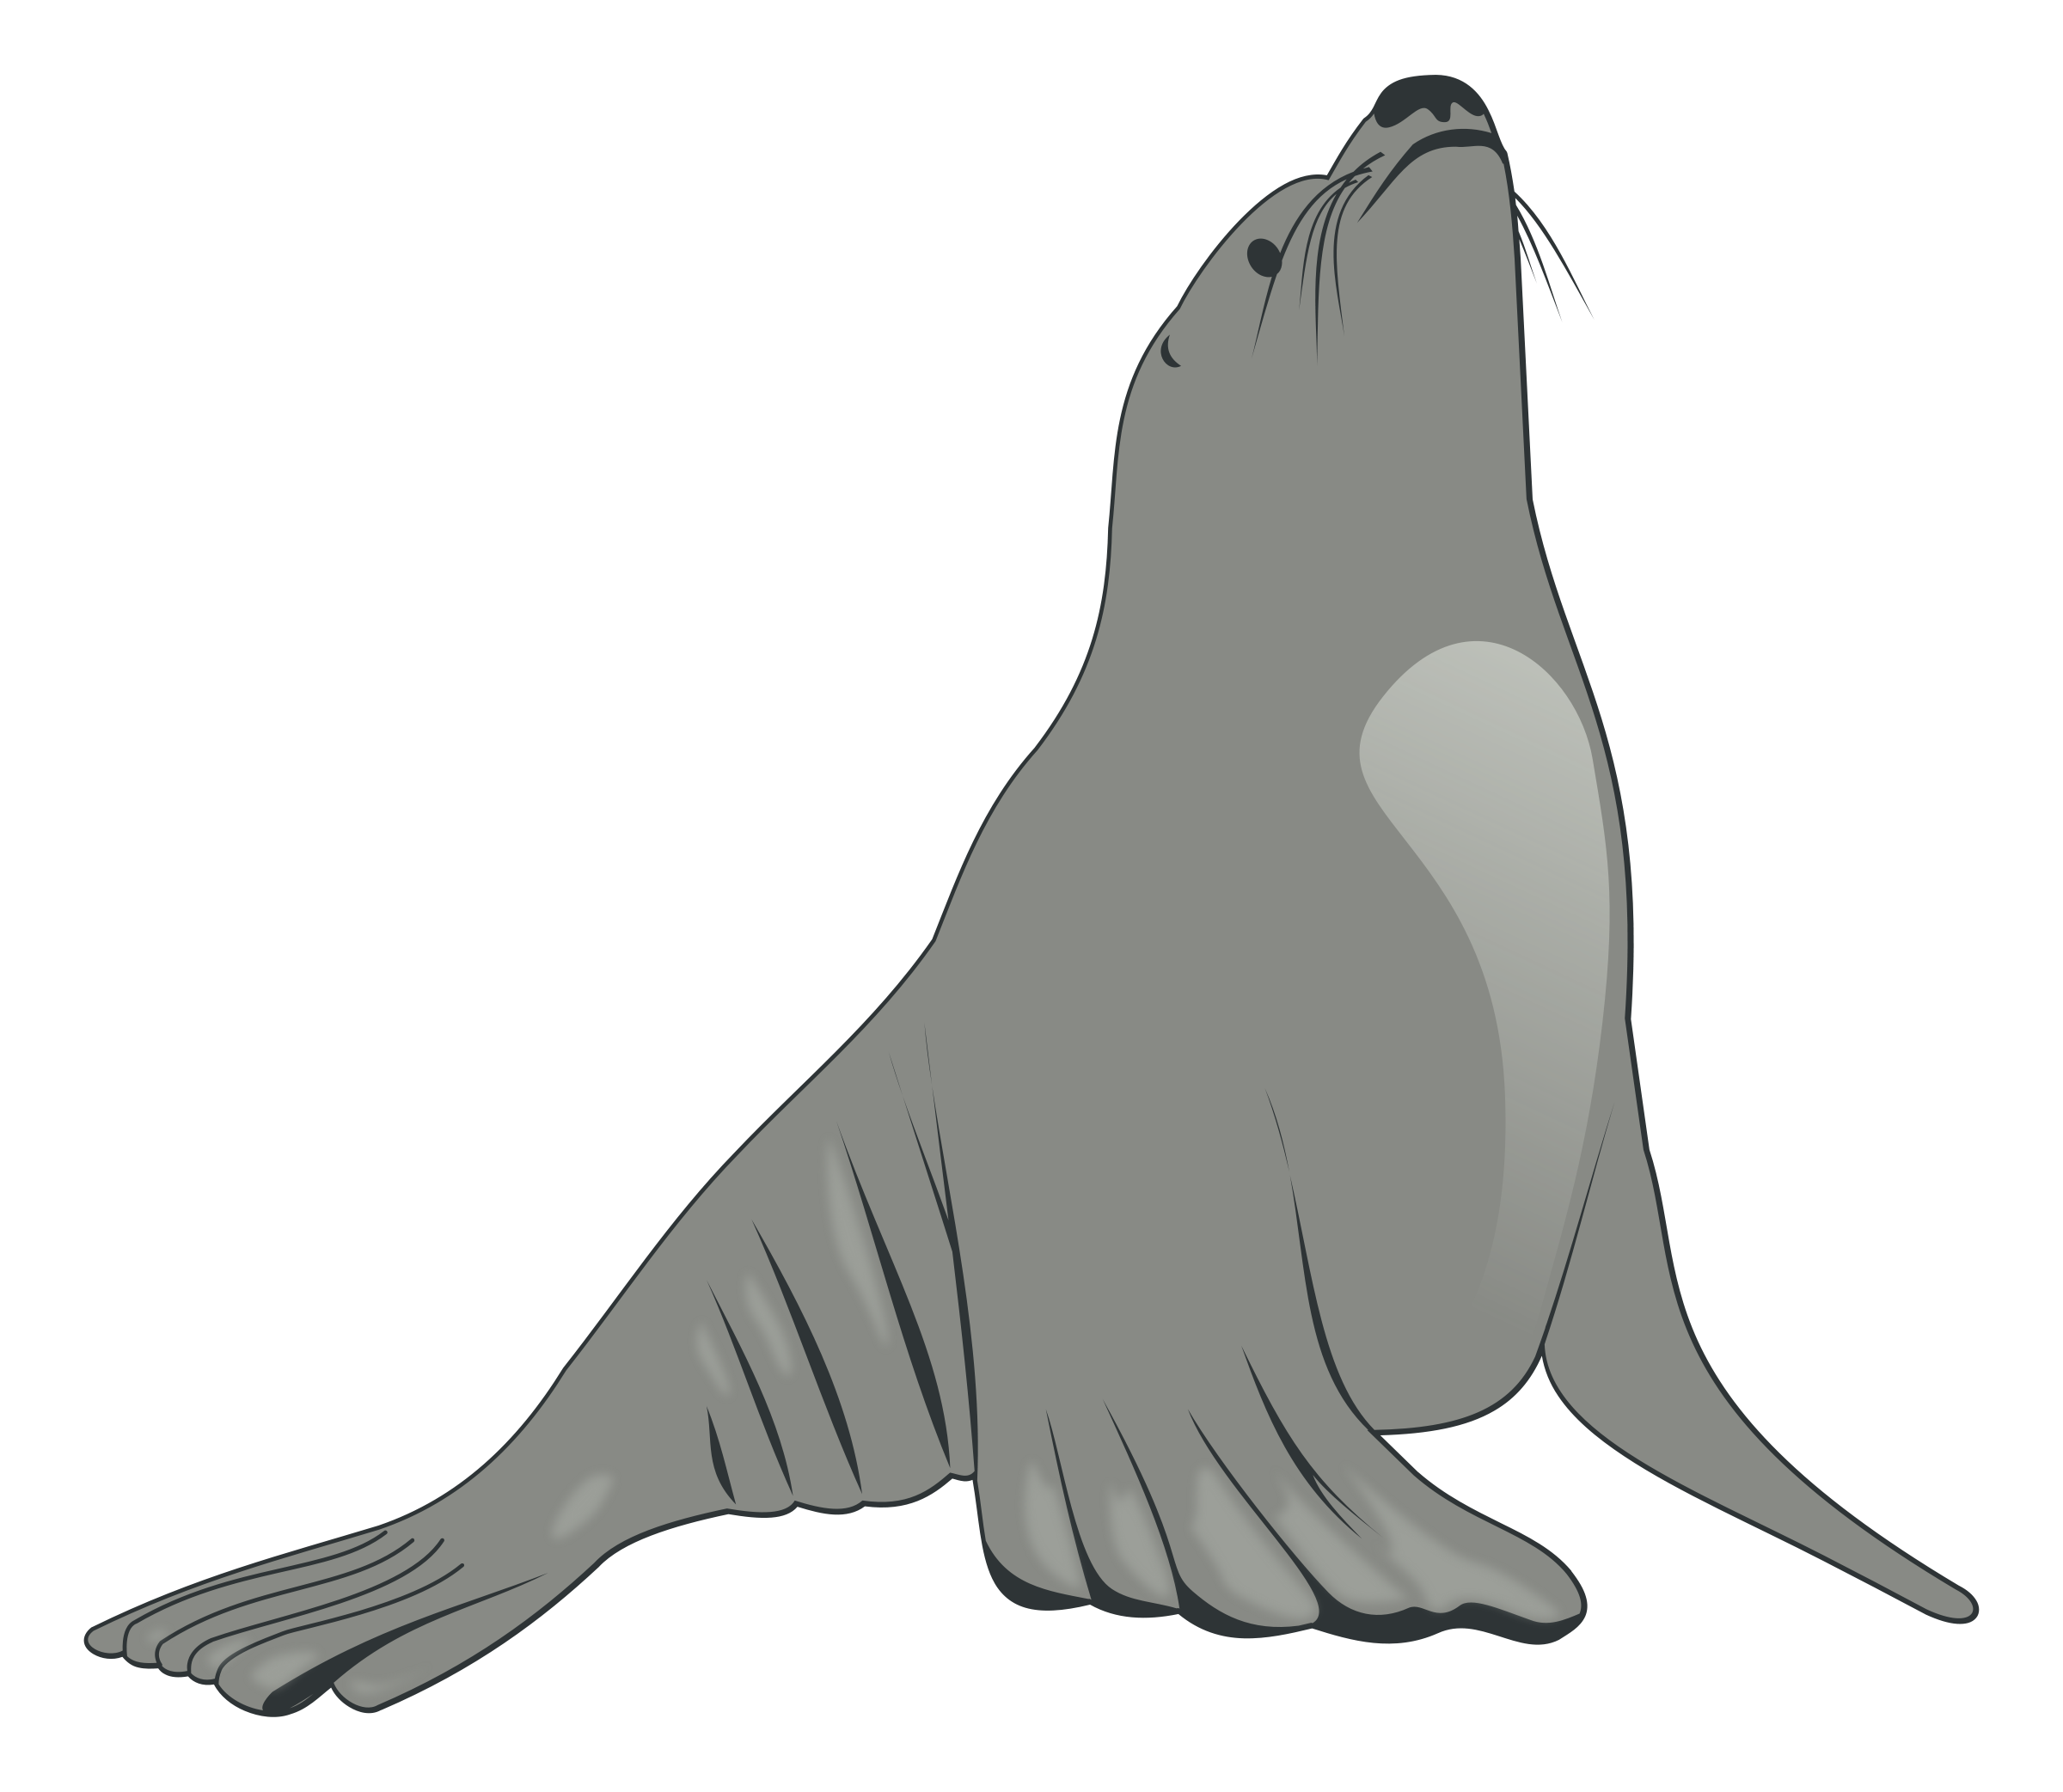 Free sea lion download. Walrus clipart vector